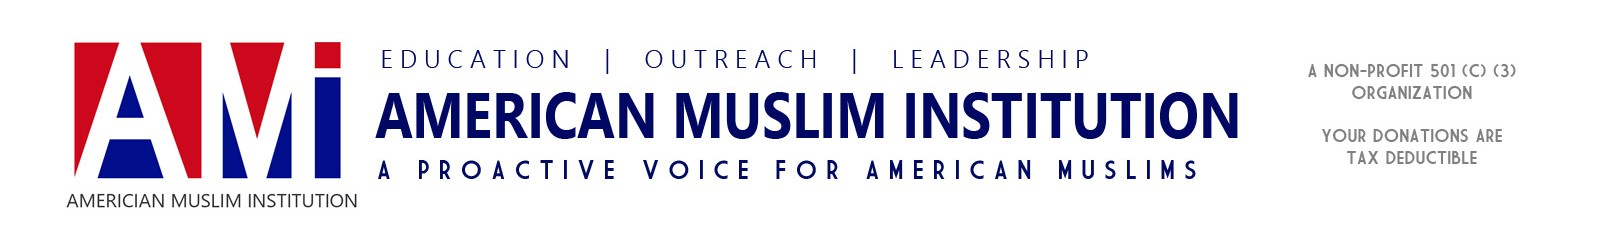 American Muslim Institution – A proactive voice for American Muslims